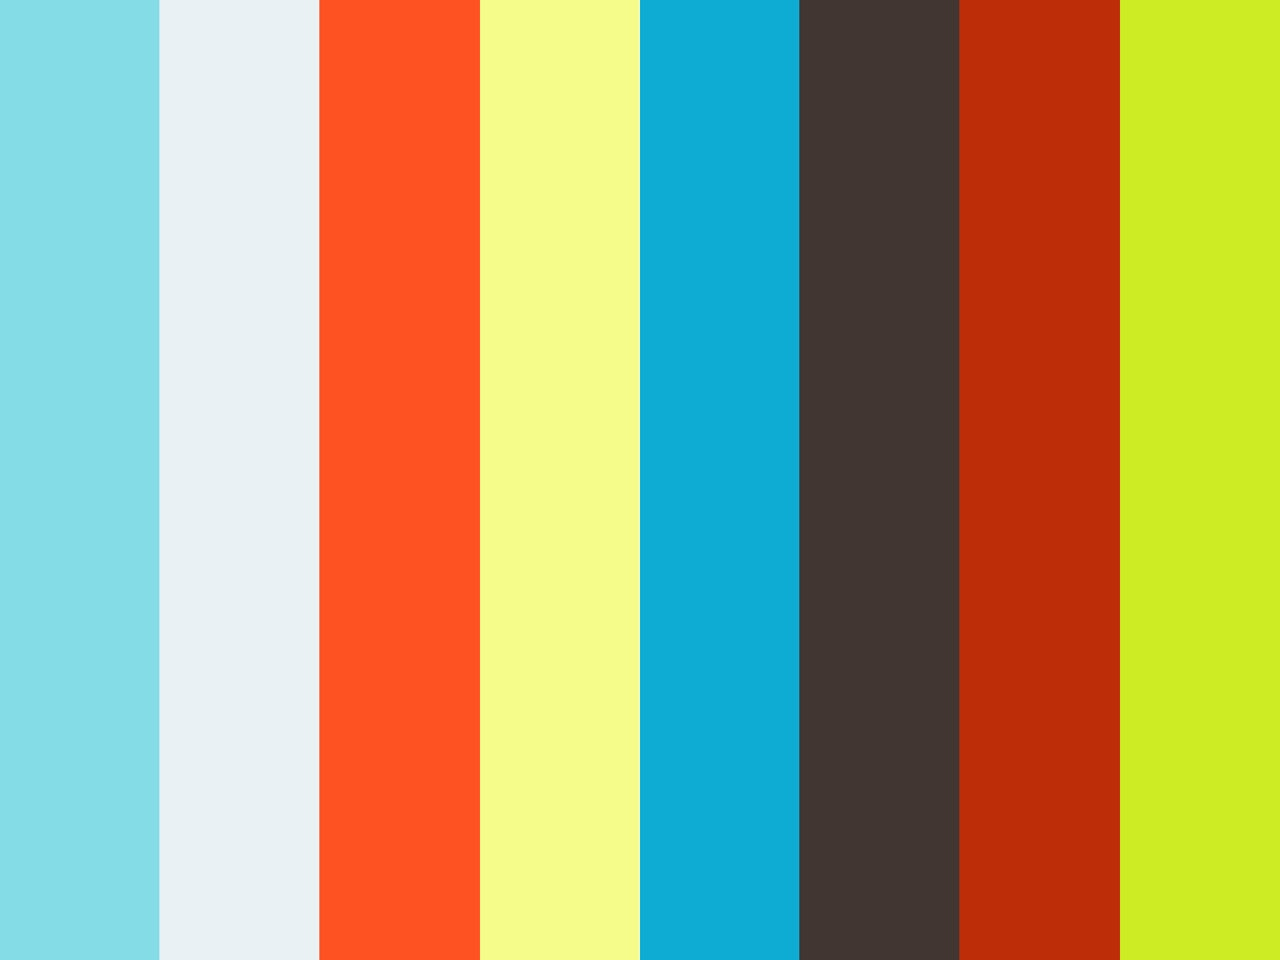 Sanctum - Underwater Cinematographer